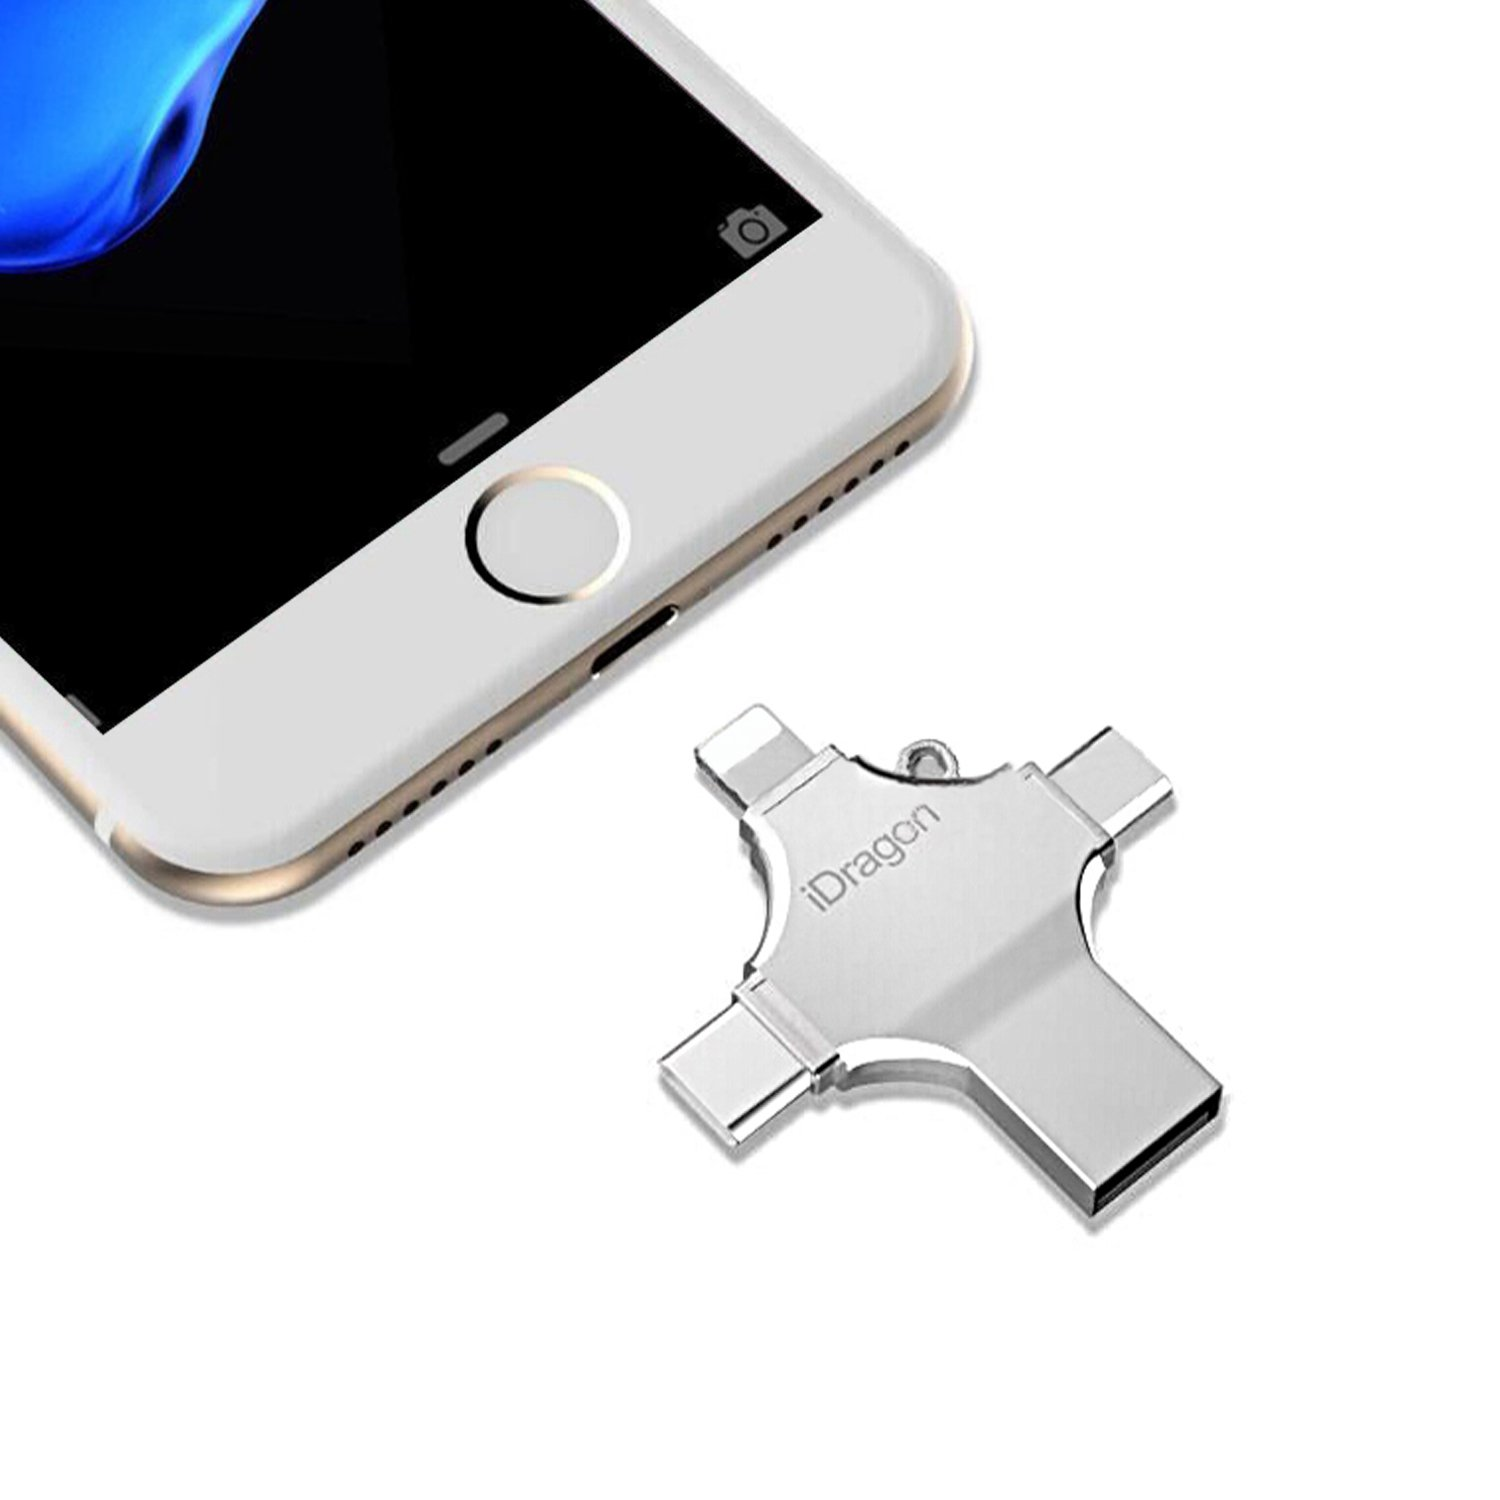 Kombrex USB Flash Drive 64GB,4 in 1 Mobile phone Flash Memory USB Stick for iPhone, iPad,Mac, PC,Android with Type C,Android Port